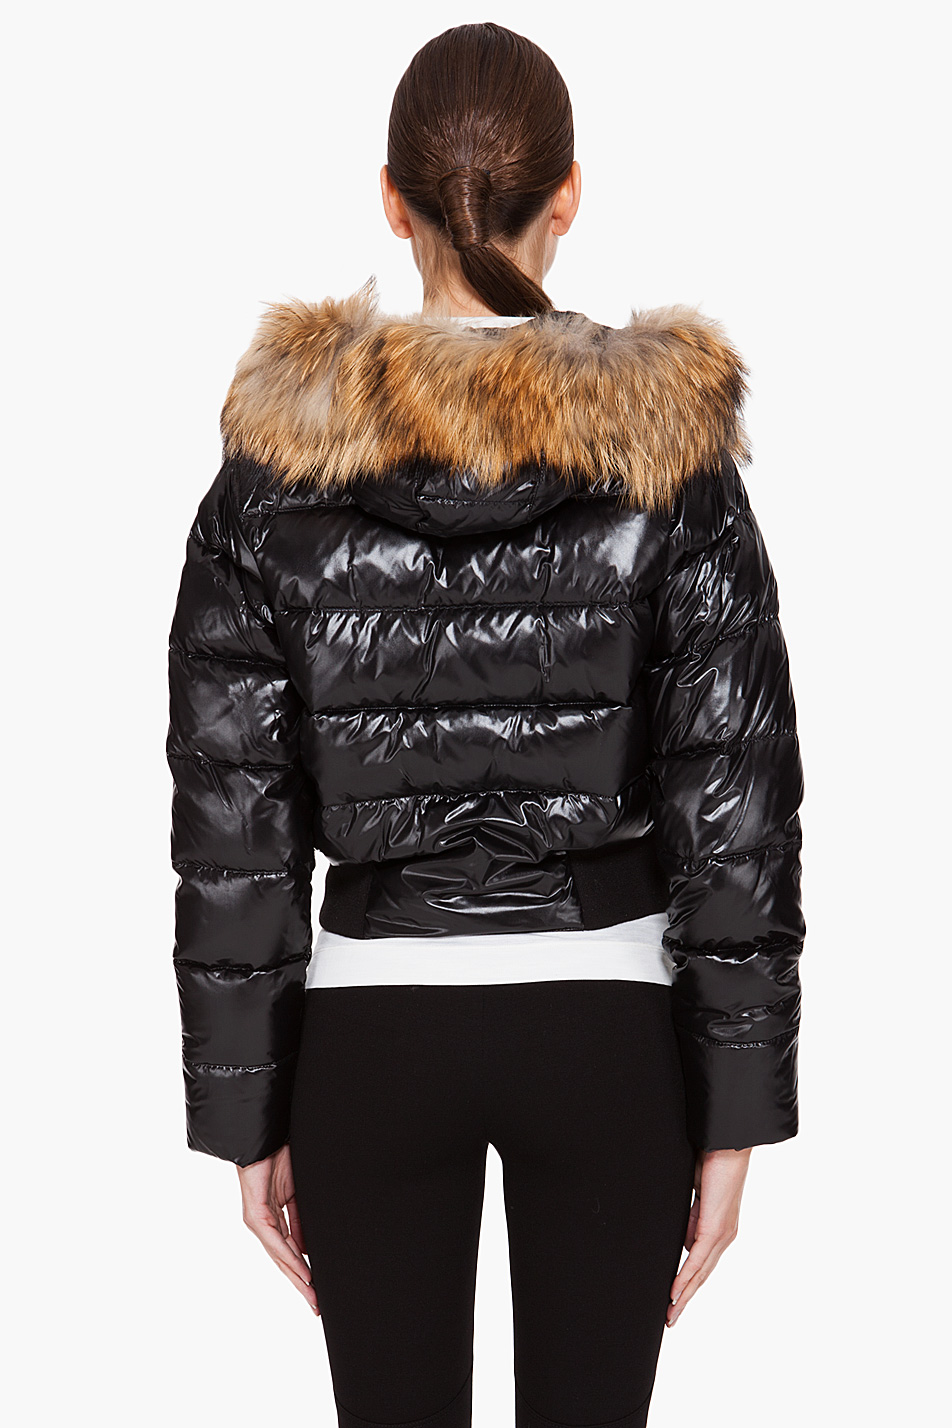 moncler jacket alpin west of rayleigh. Black Bedroom Furniture Sets. Home Design Ideas